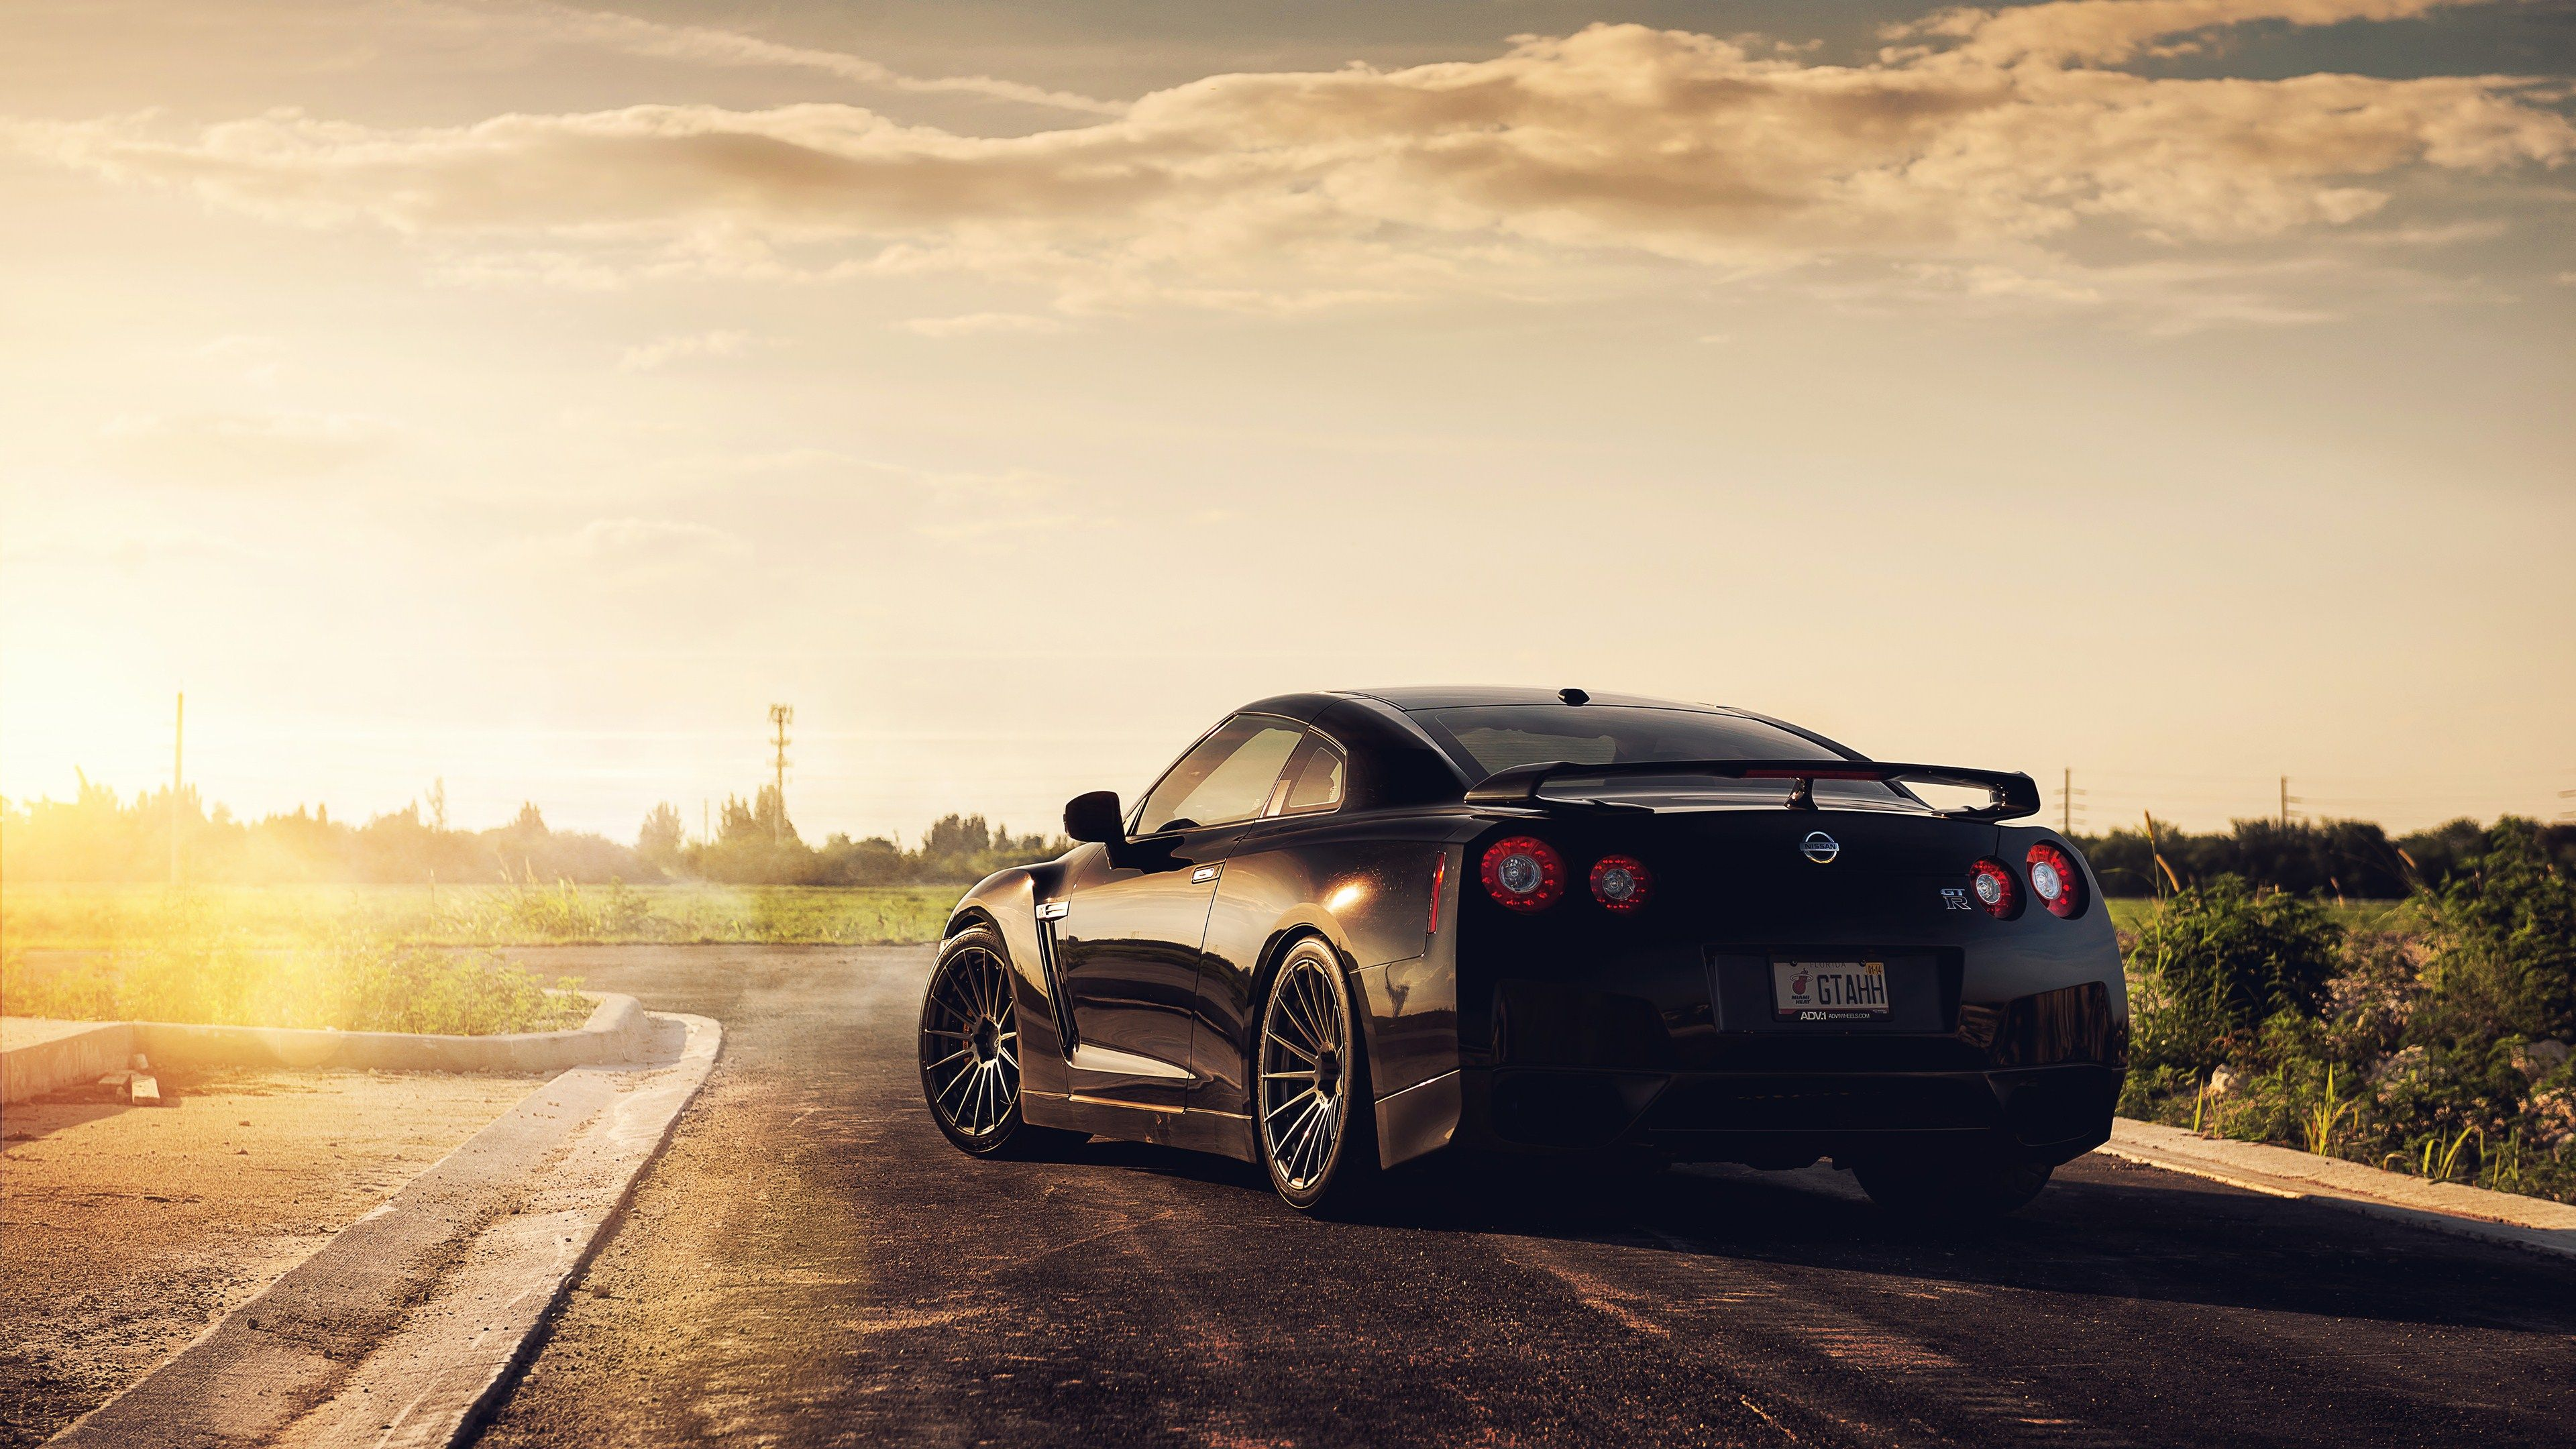 Download Nissan Car 4k Wallpaper Windows 10 R35 gtr